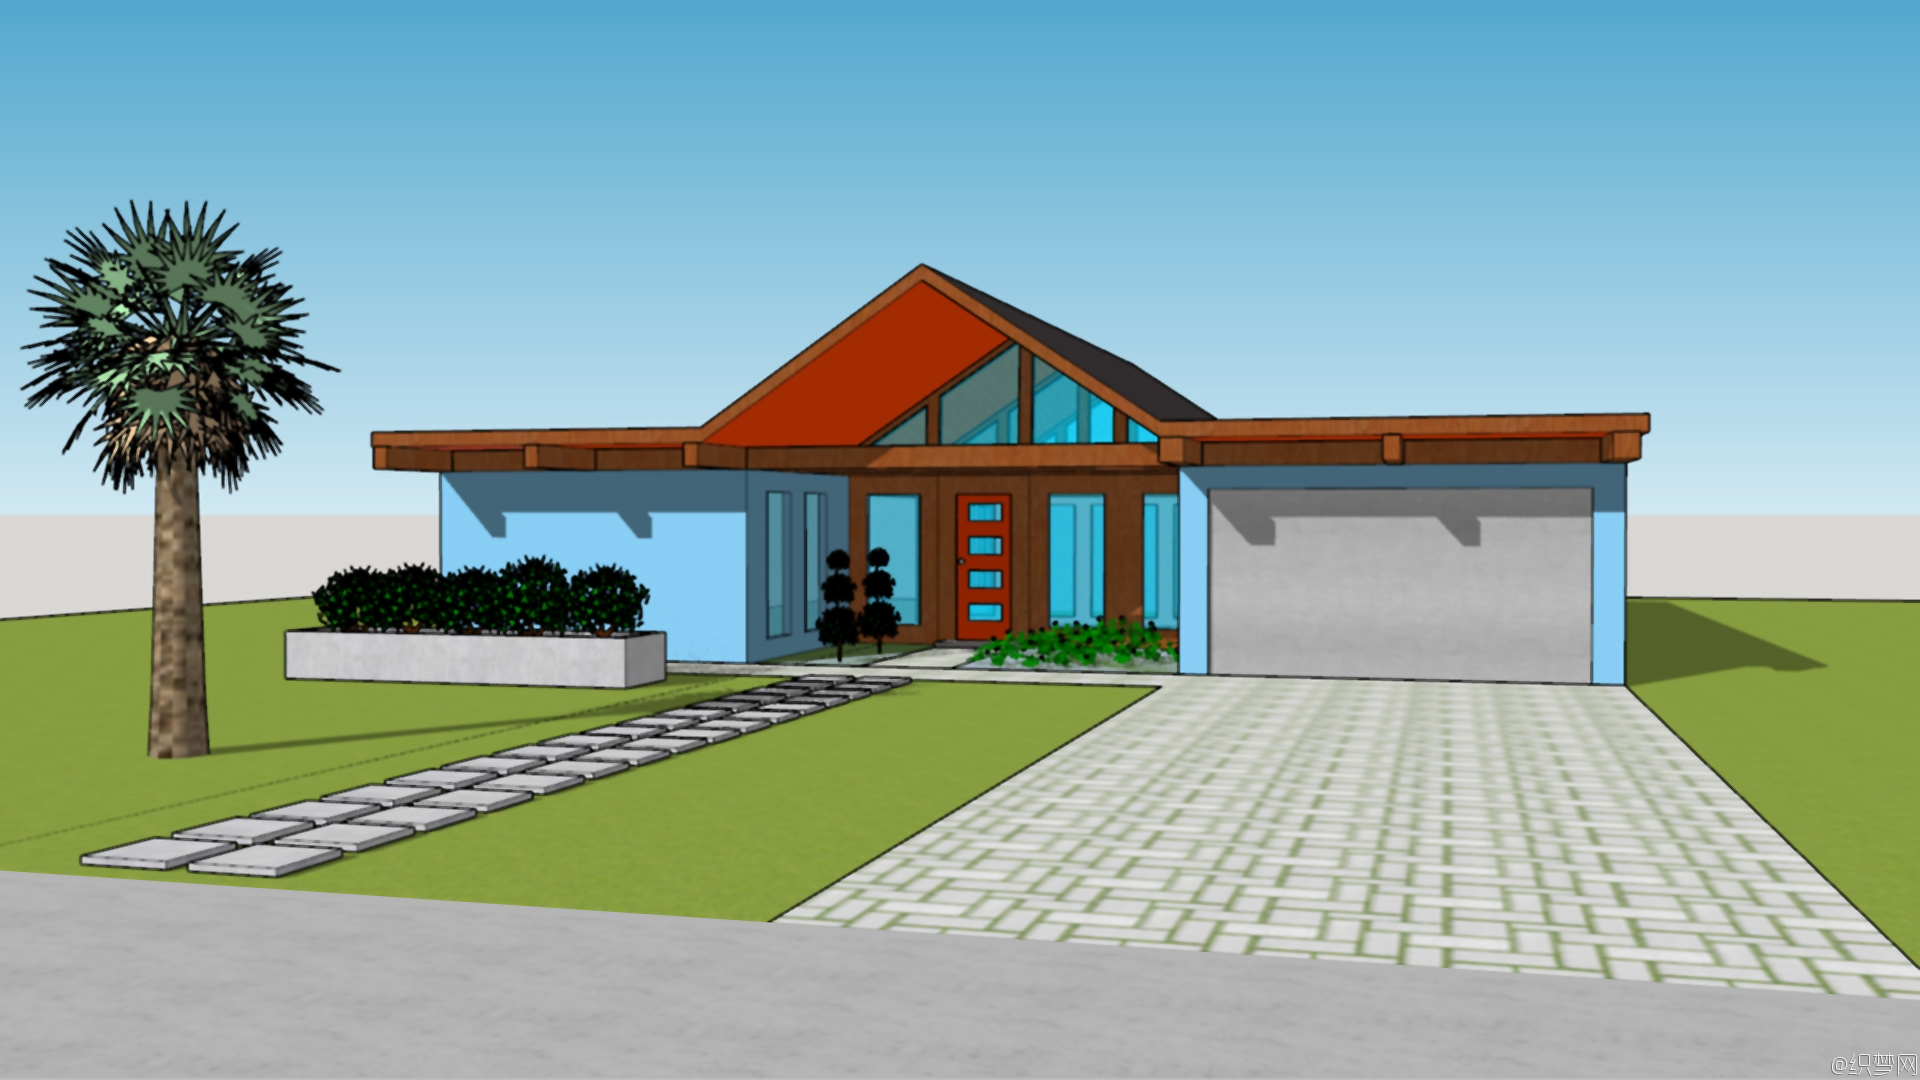 SketchUp 2017基础学习视频教程 - SketchUp 2017 Essential Training